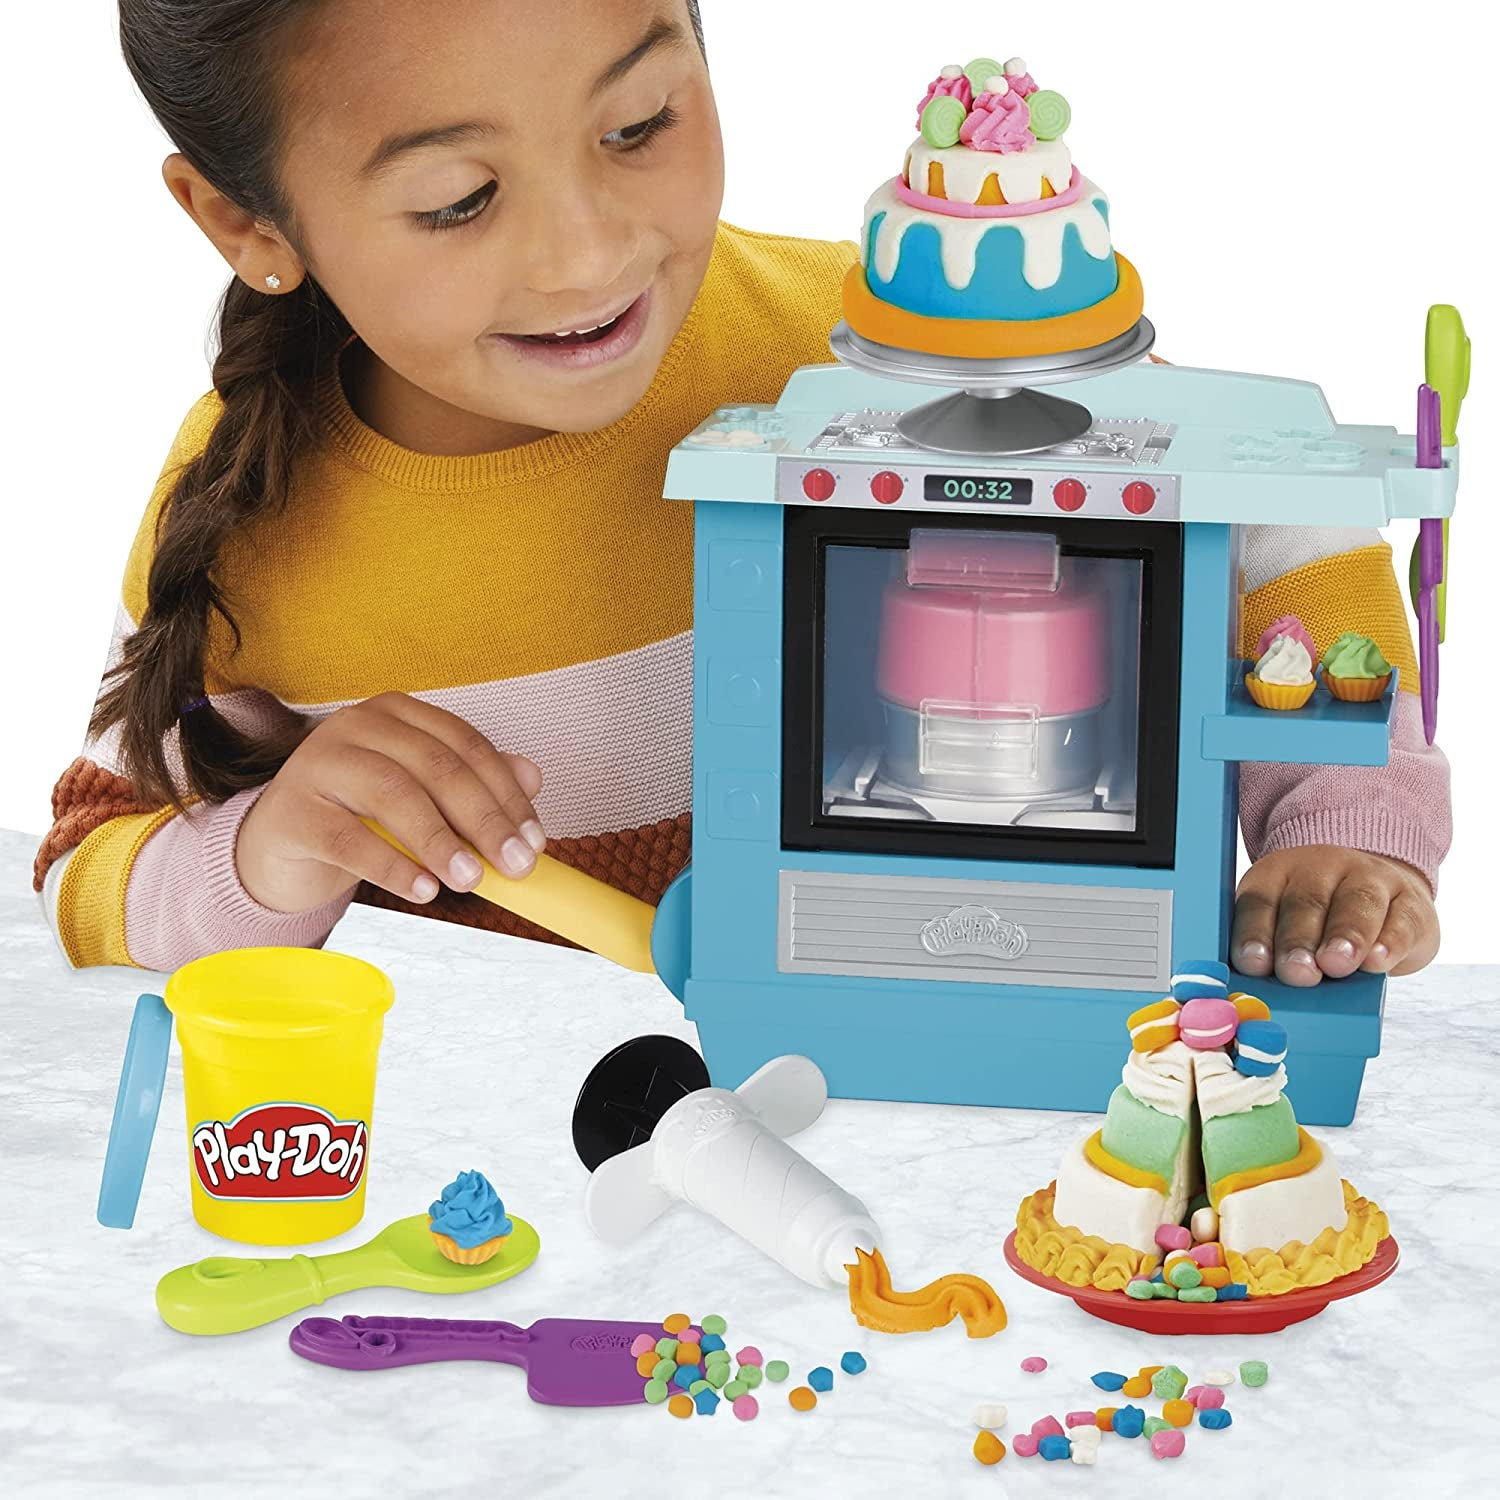 Child model playing with Play-Doh bakery set